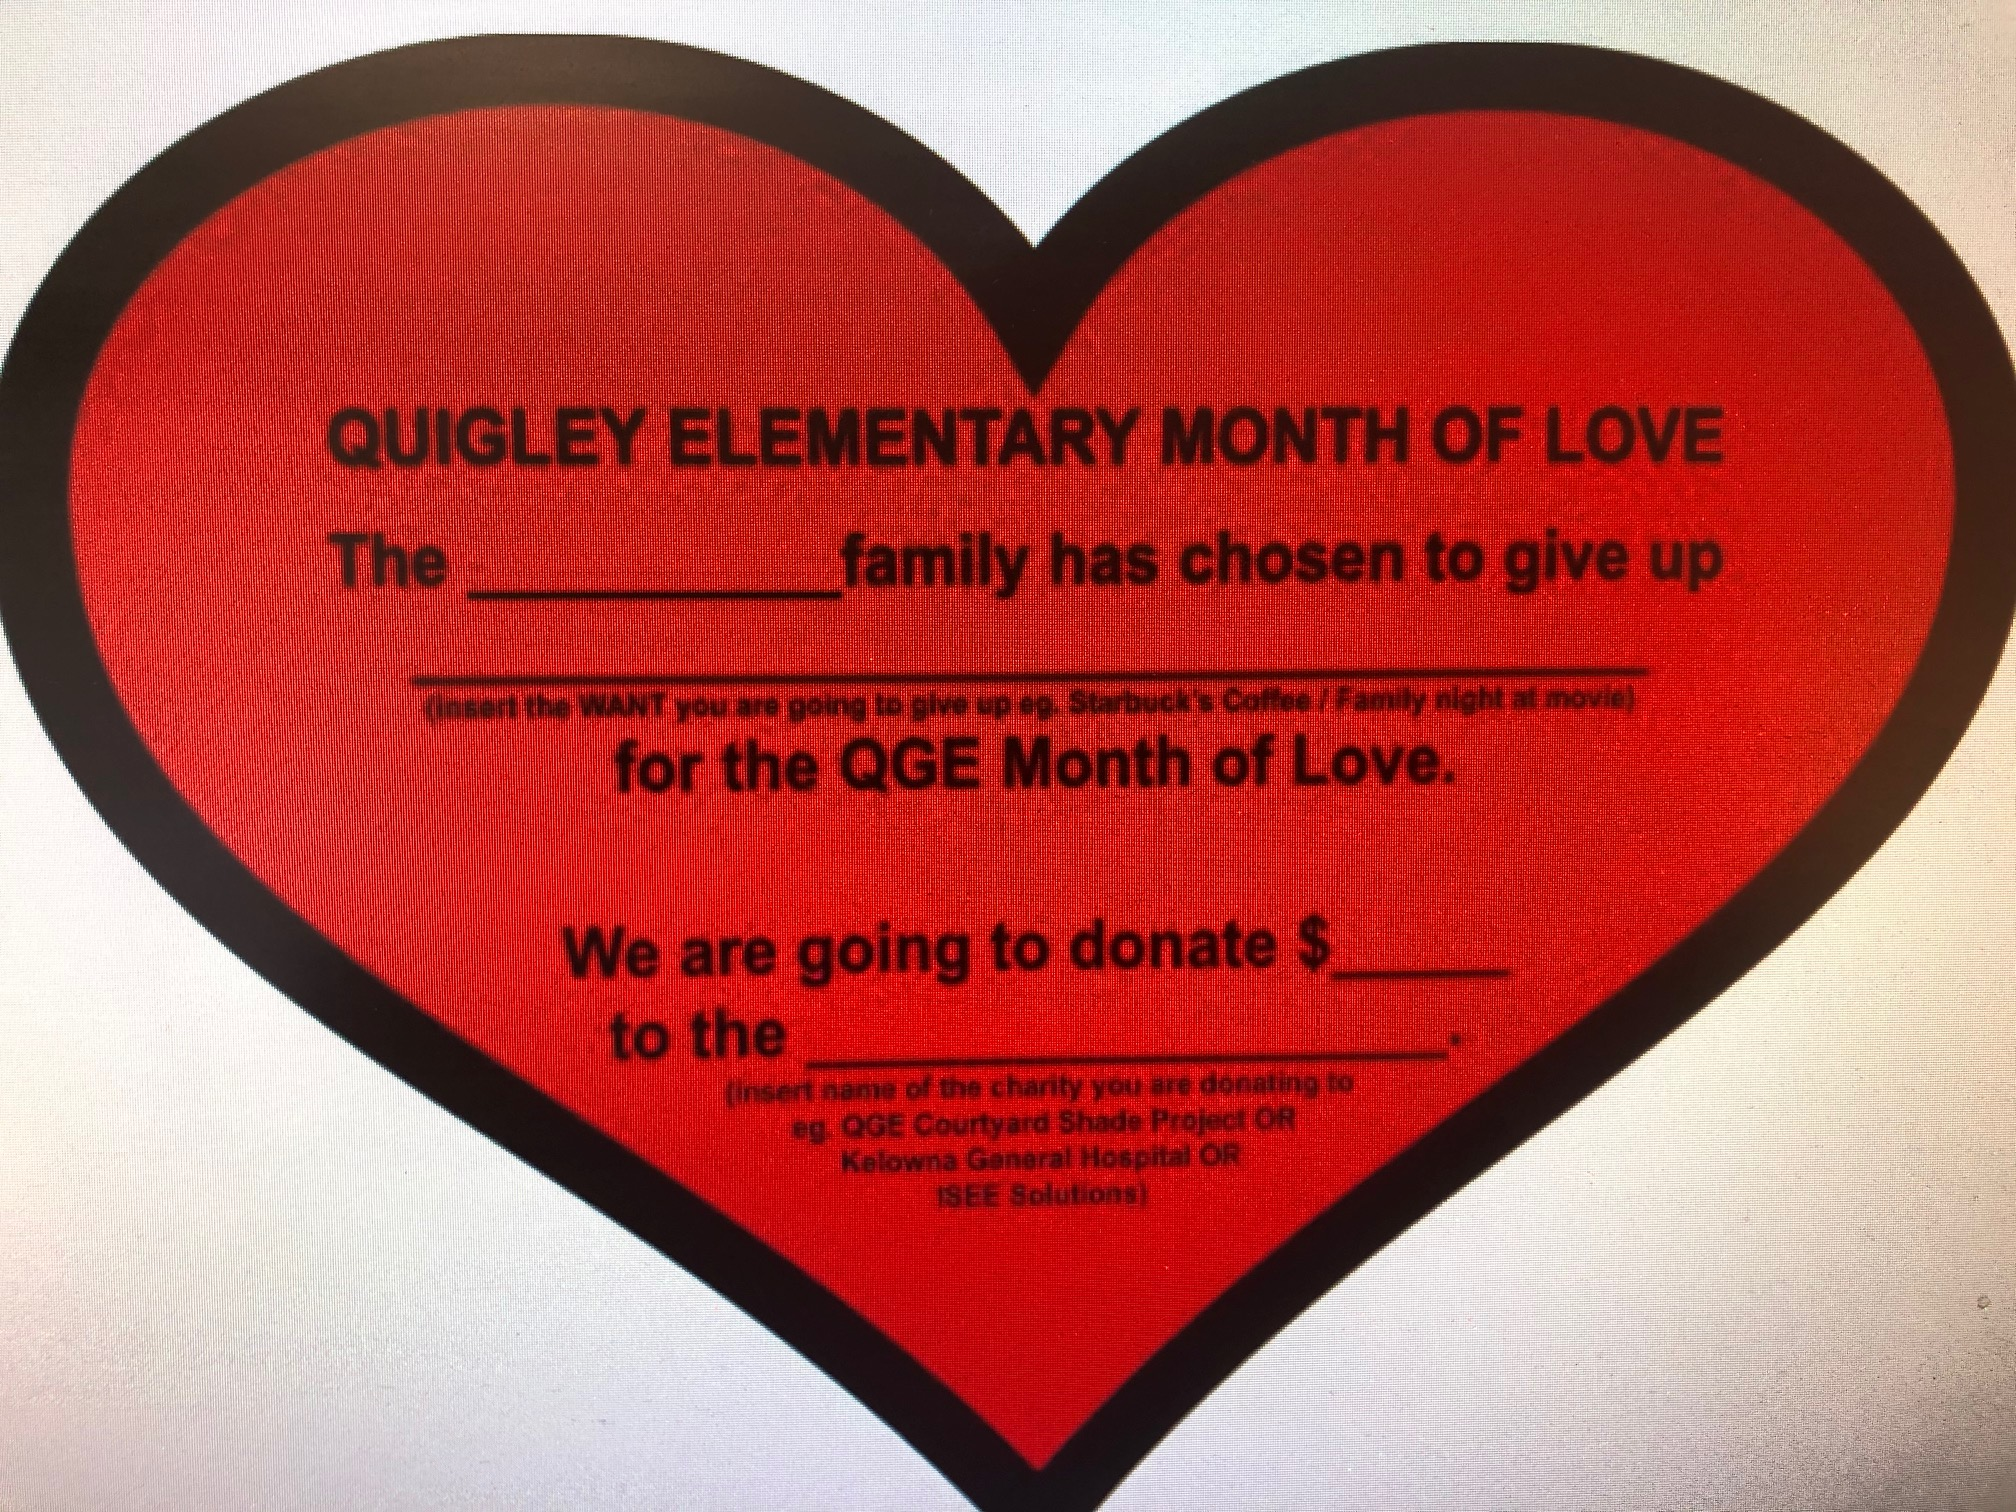 Quigley Month of Love 2021